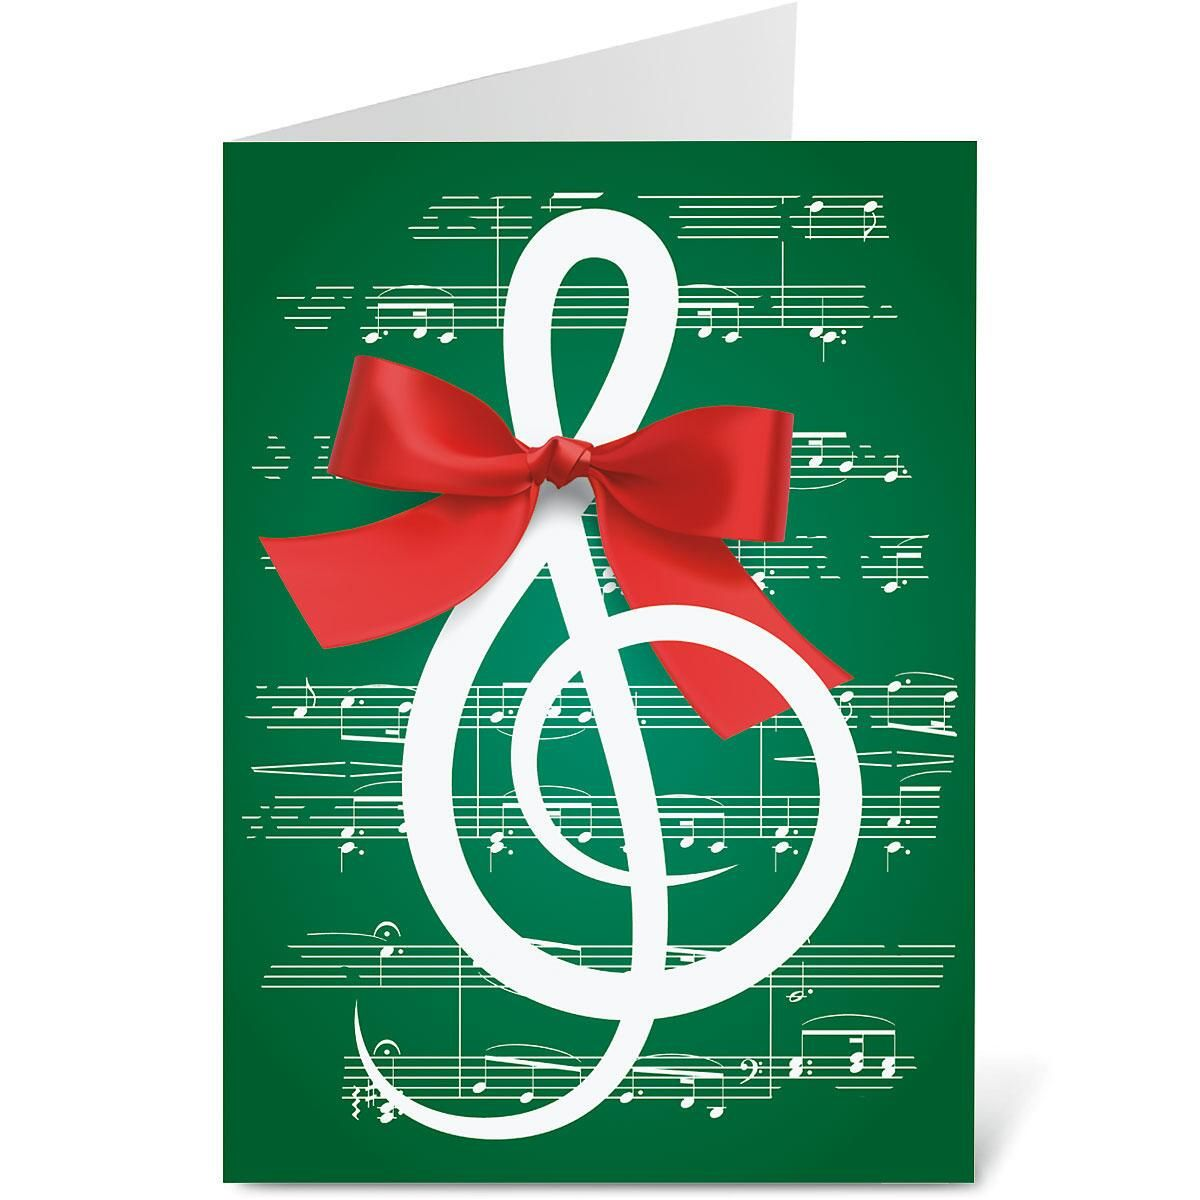 Merry Melody Nonpersonalized Christmas Cards - Set of 72